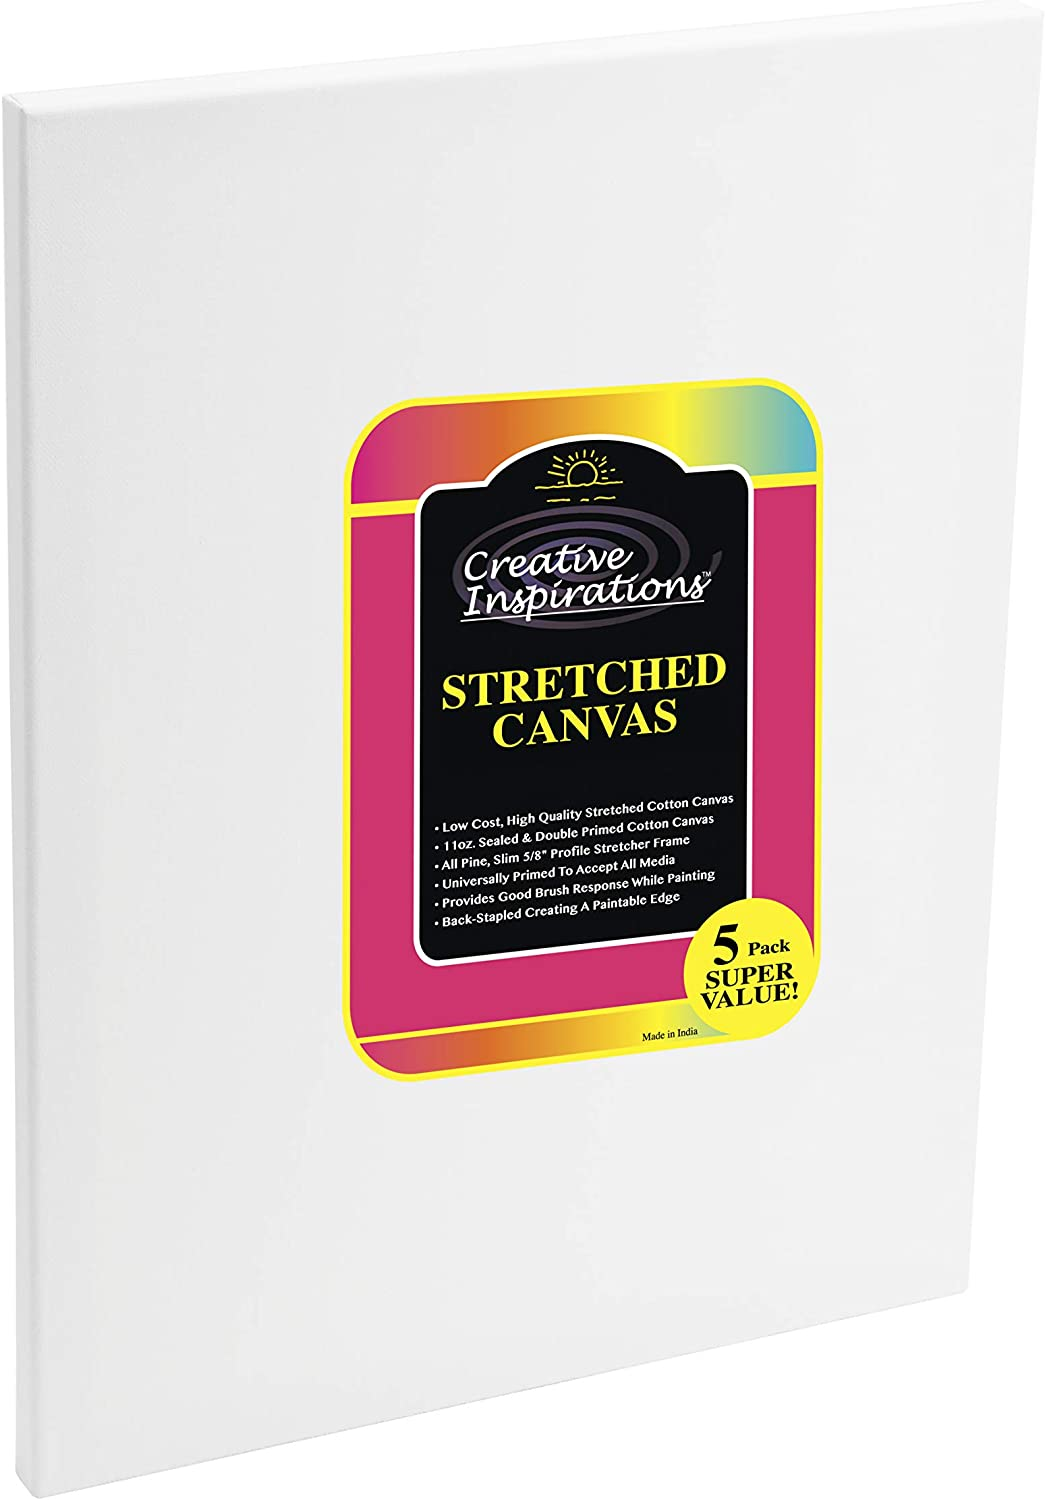 Creative Inspirations Artist Max Latest item 59% OFF Pre Canvas for Stretched Painting